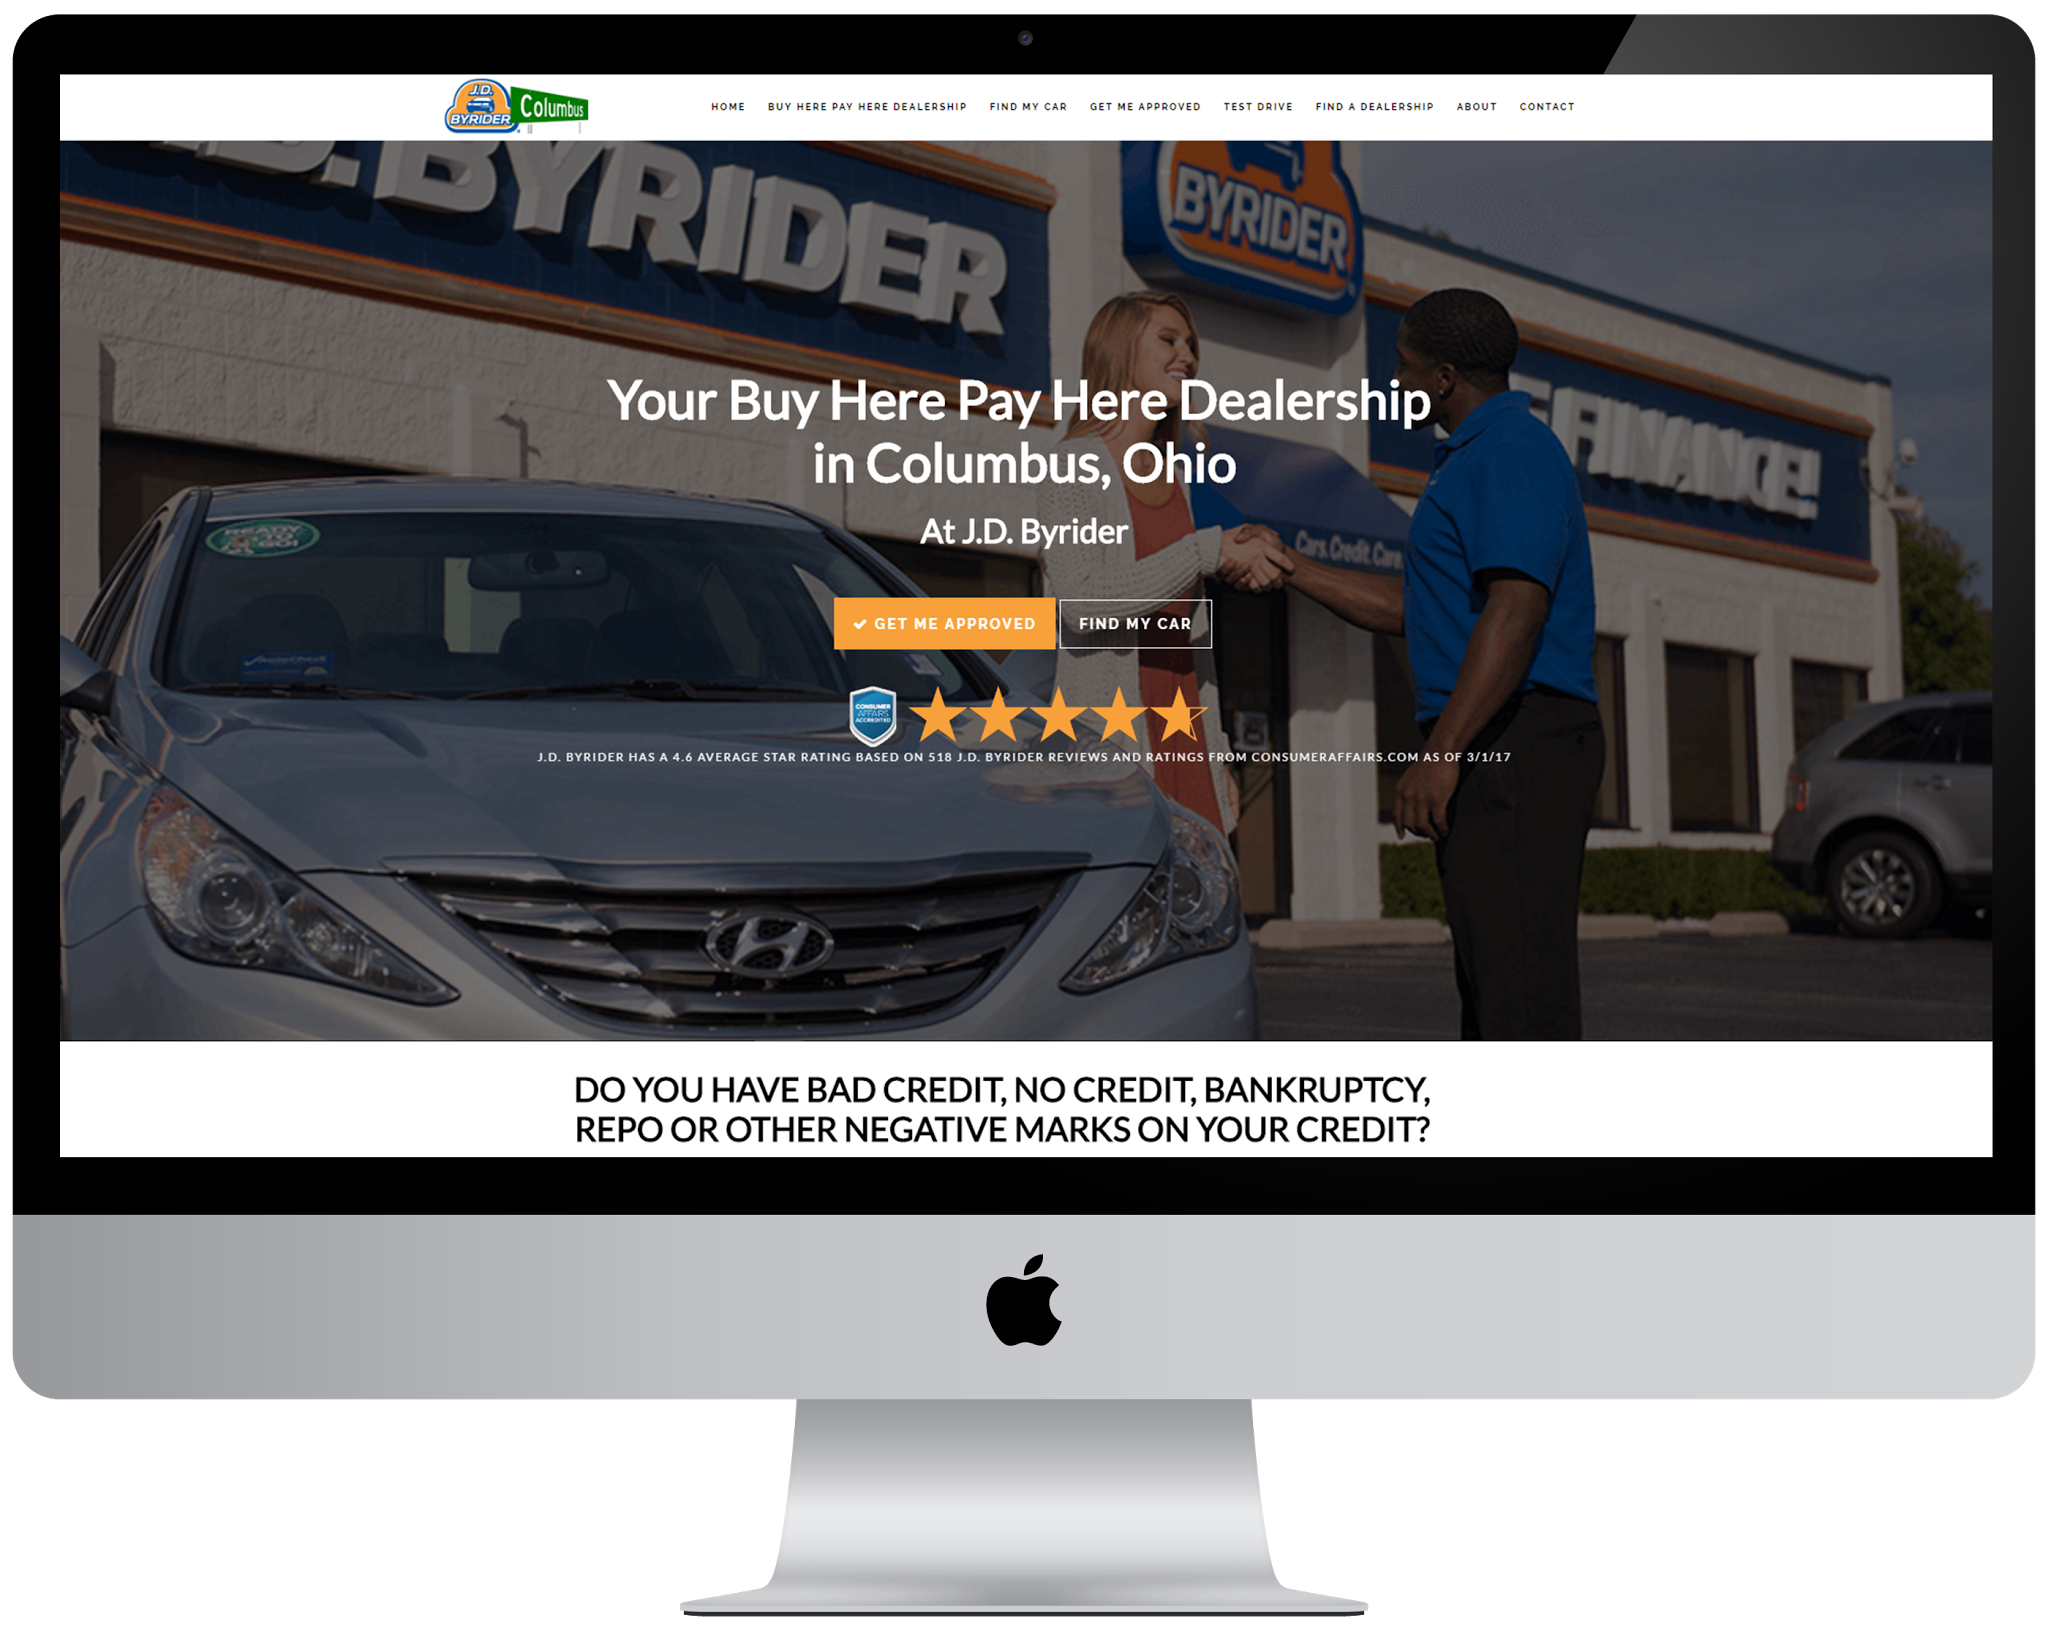 j d byrider launches new website to assist used car buyers in columbus ohio with credit challenges. Black Bedroom Furniture Sets. Home Design Ideas